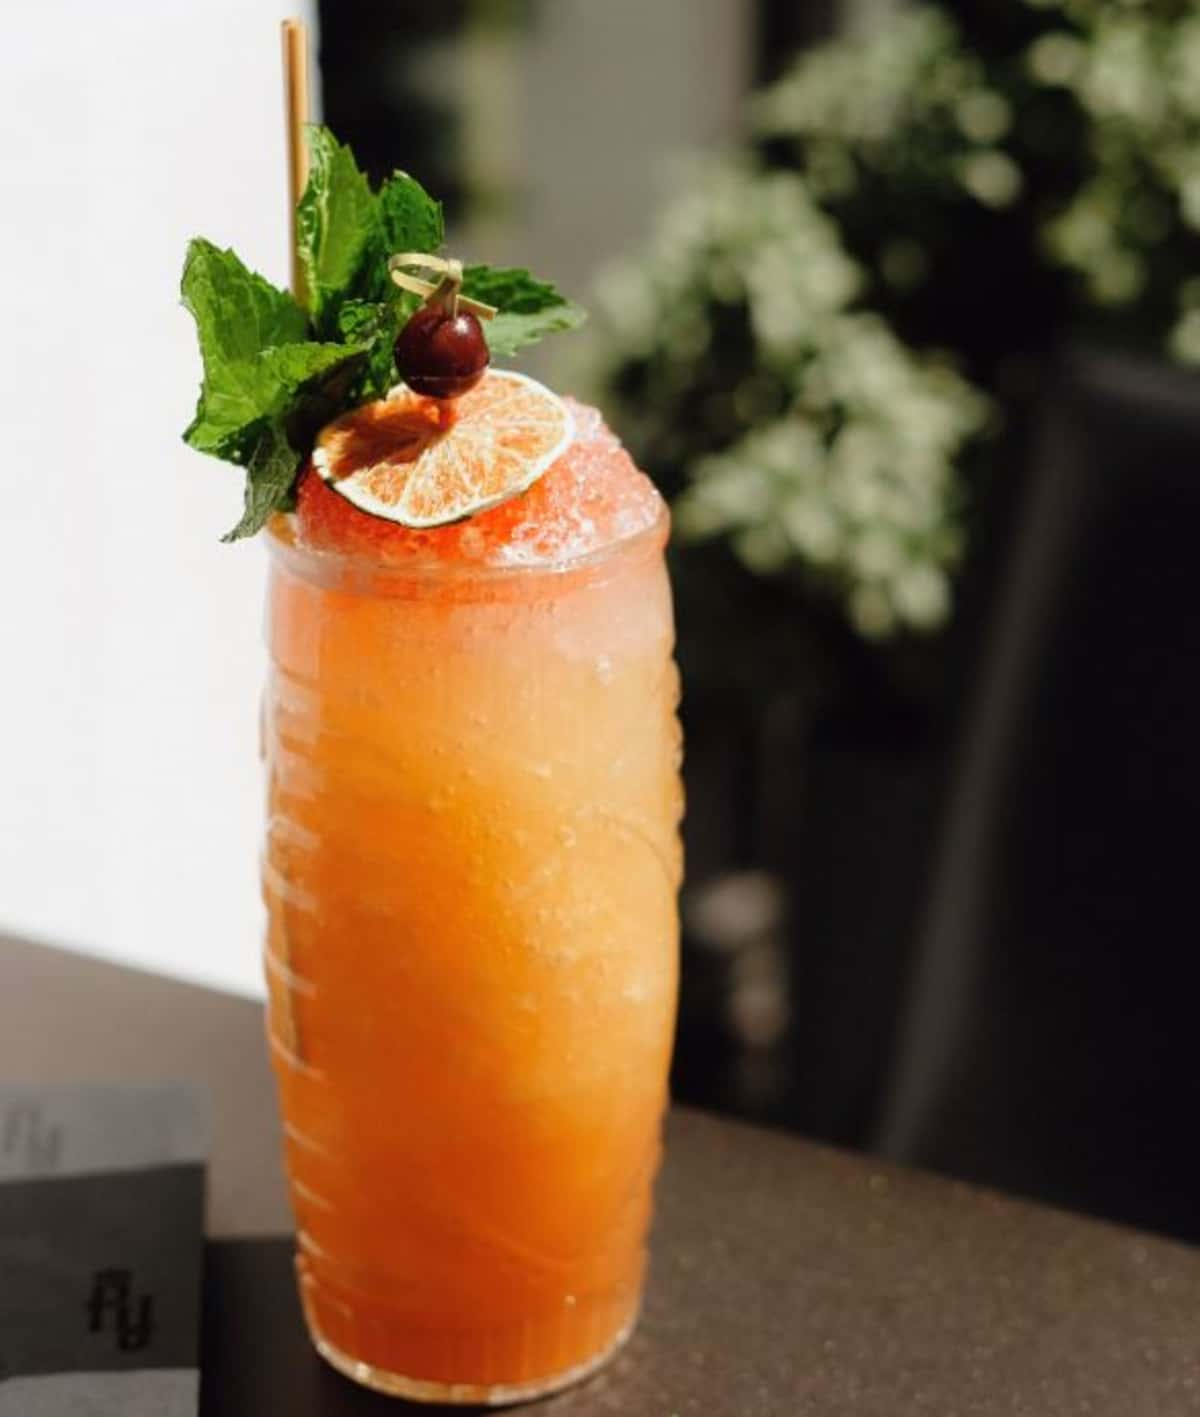 The mixologists at Pennyroyal are in the island spirit. Pennyroyal/ Ryan Kleinmann